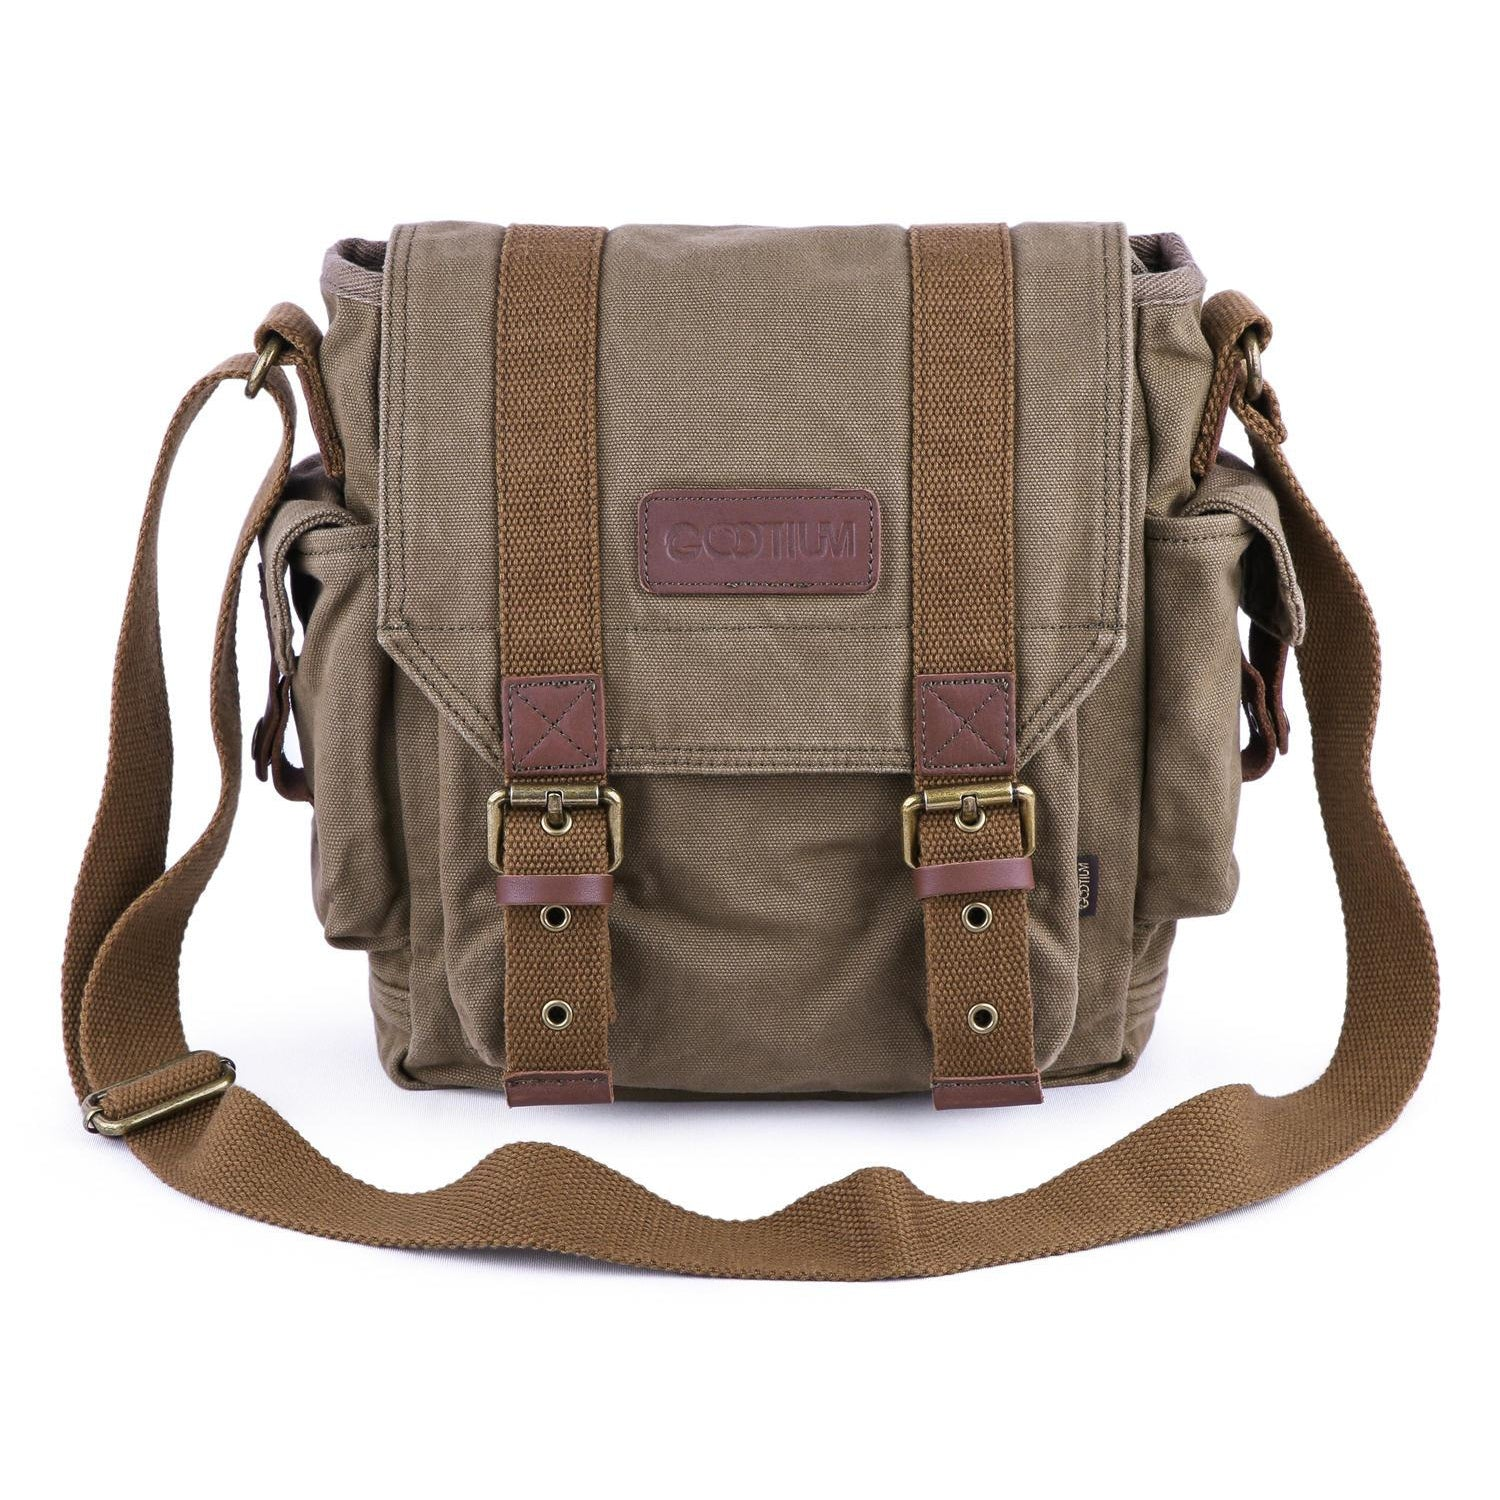 Satchel 21217 Canvas Mens Gootium Bag w7BBPAUFq